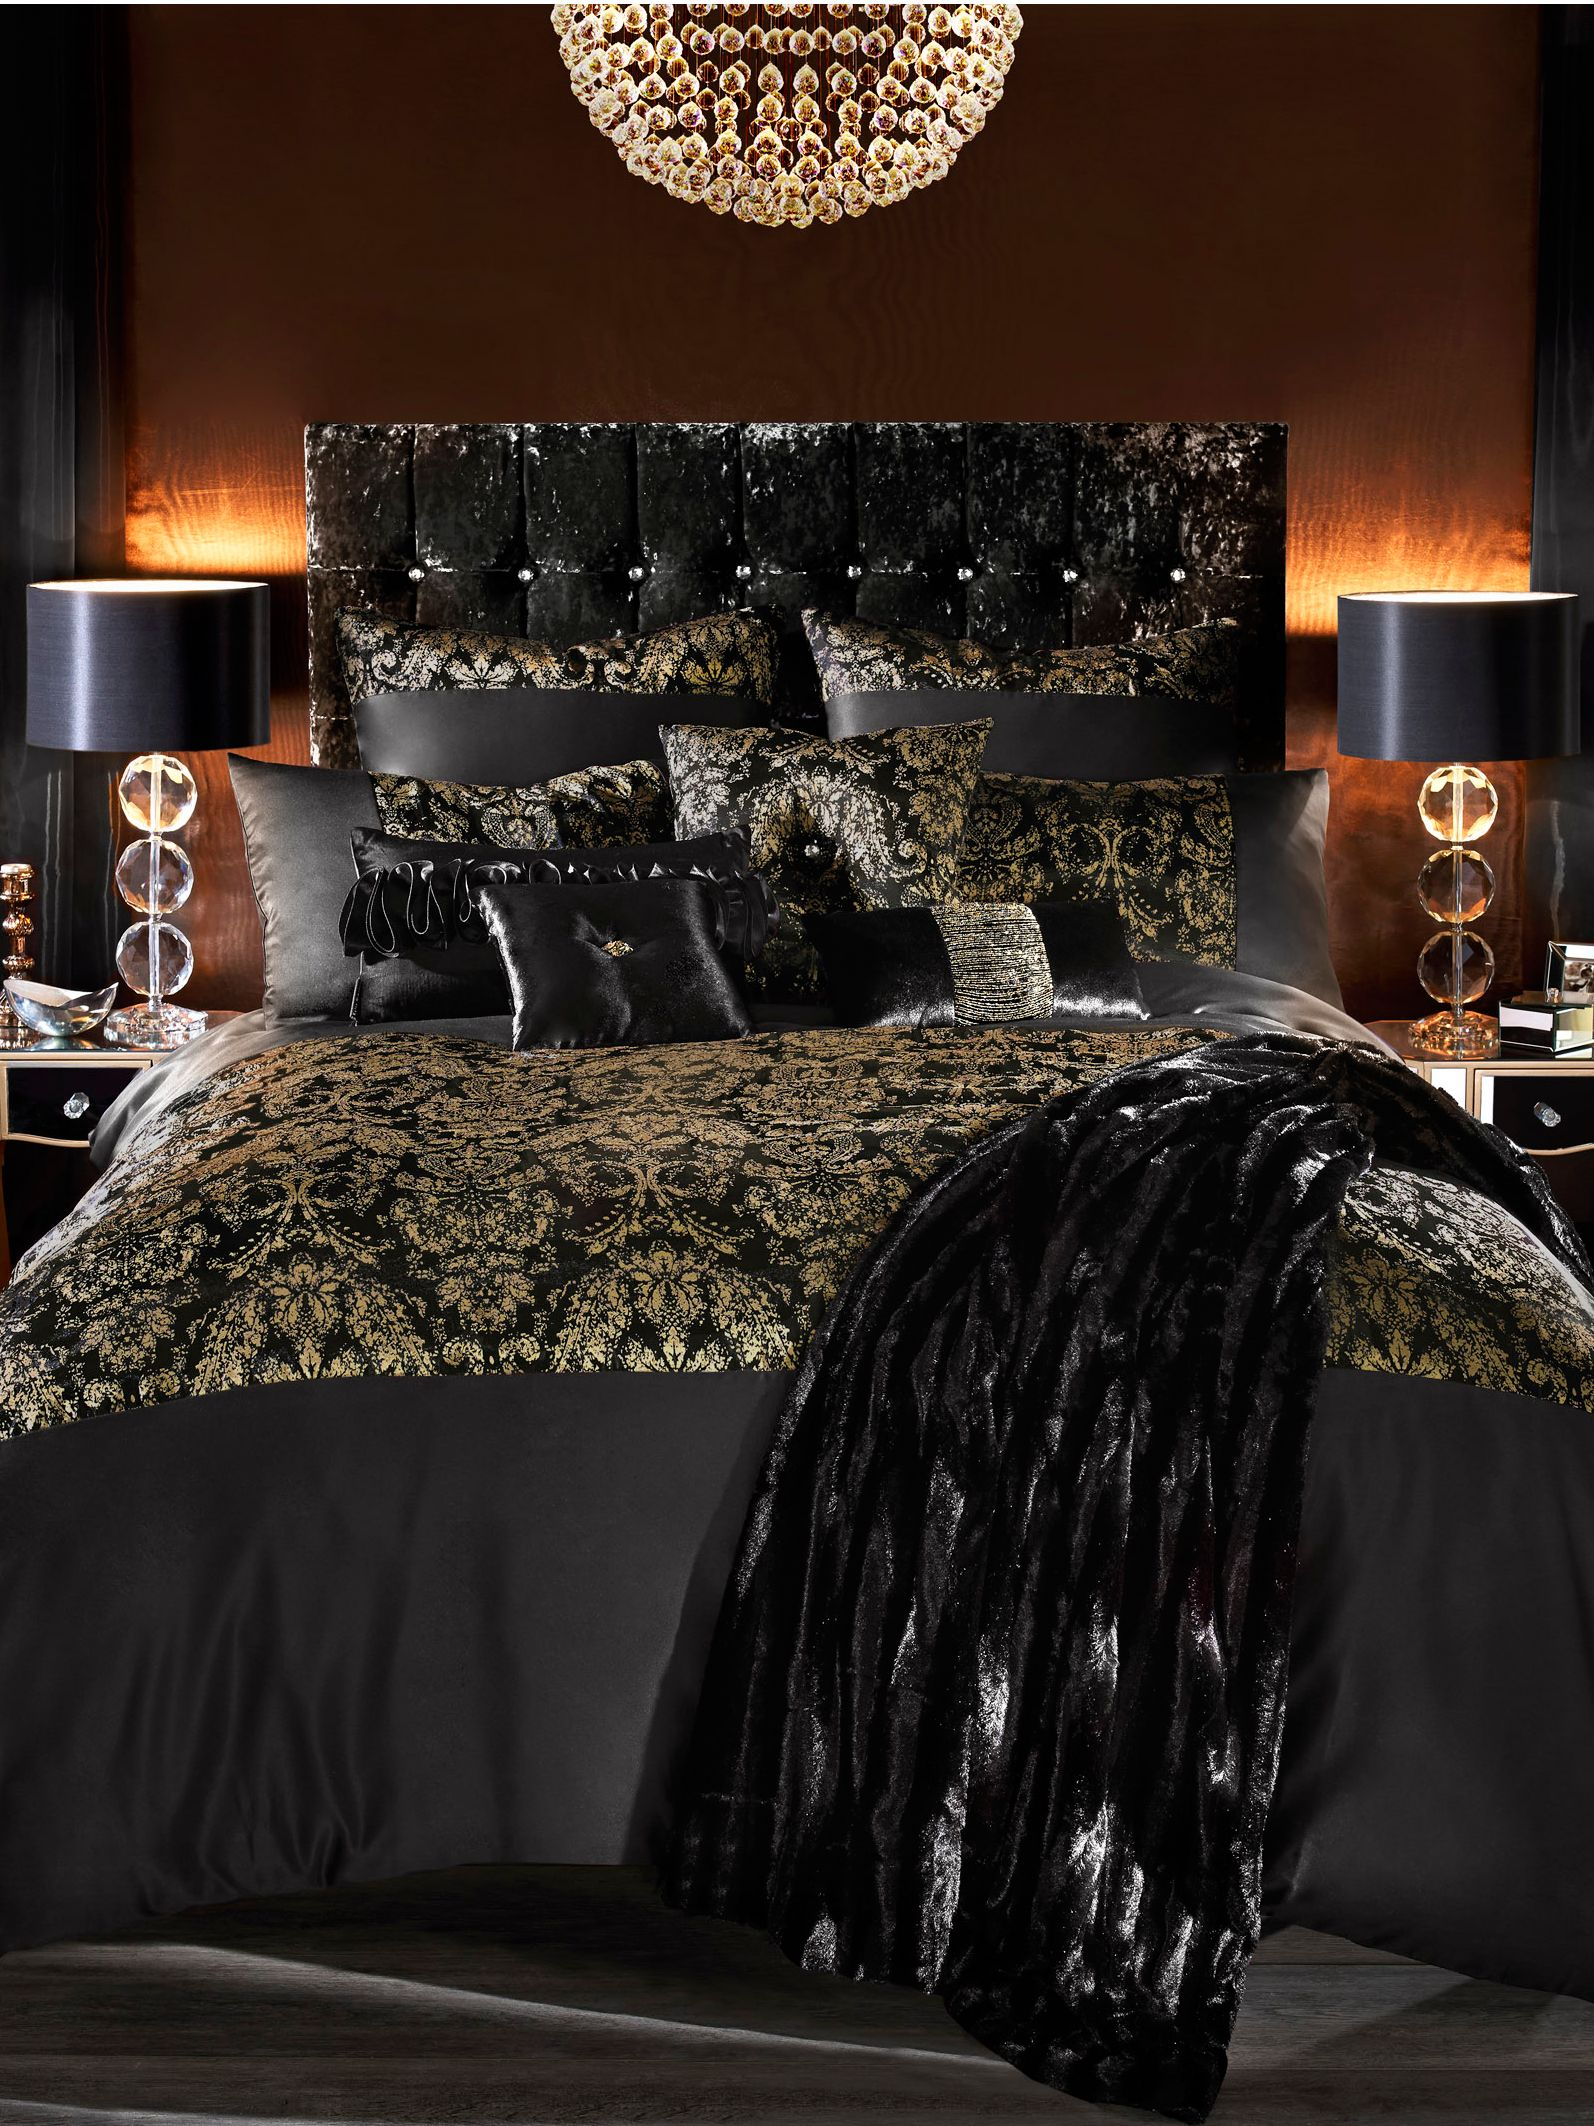 Alondra king duvet cover in black and gold